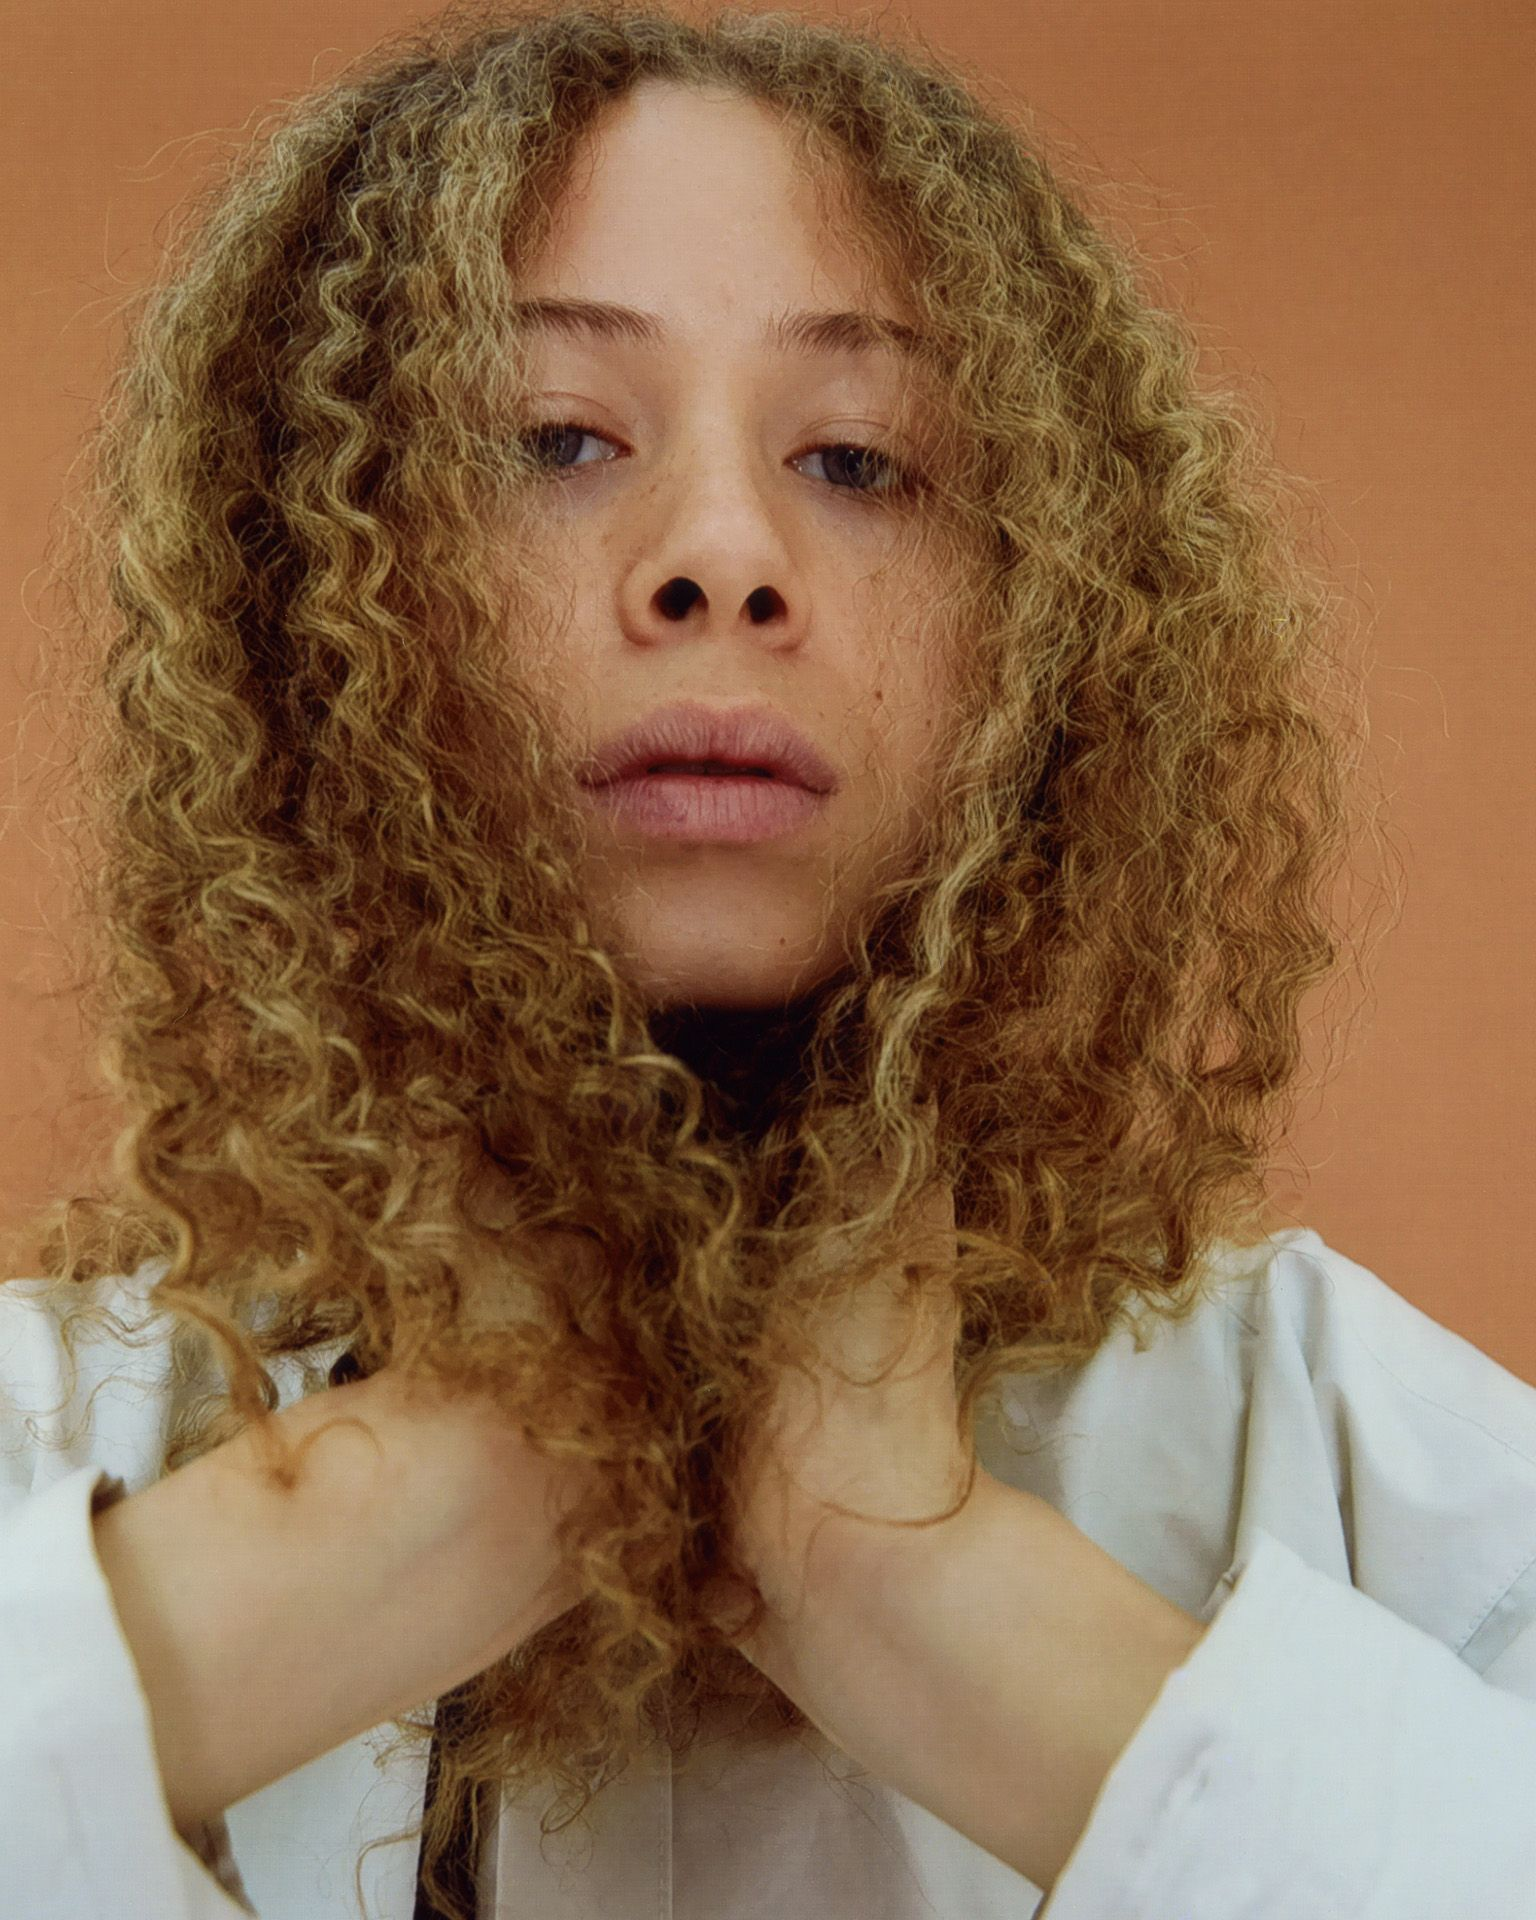 female model with curly blond hair on dark orange background by Oumayma B Tanfous for Document Journal Barragannnn casting summer spring 2020